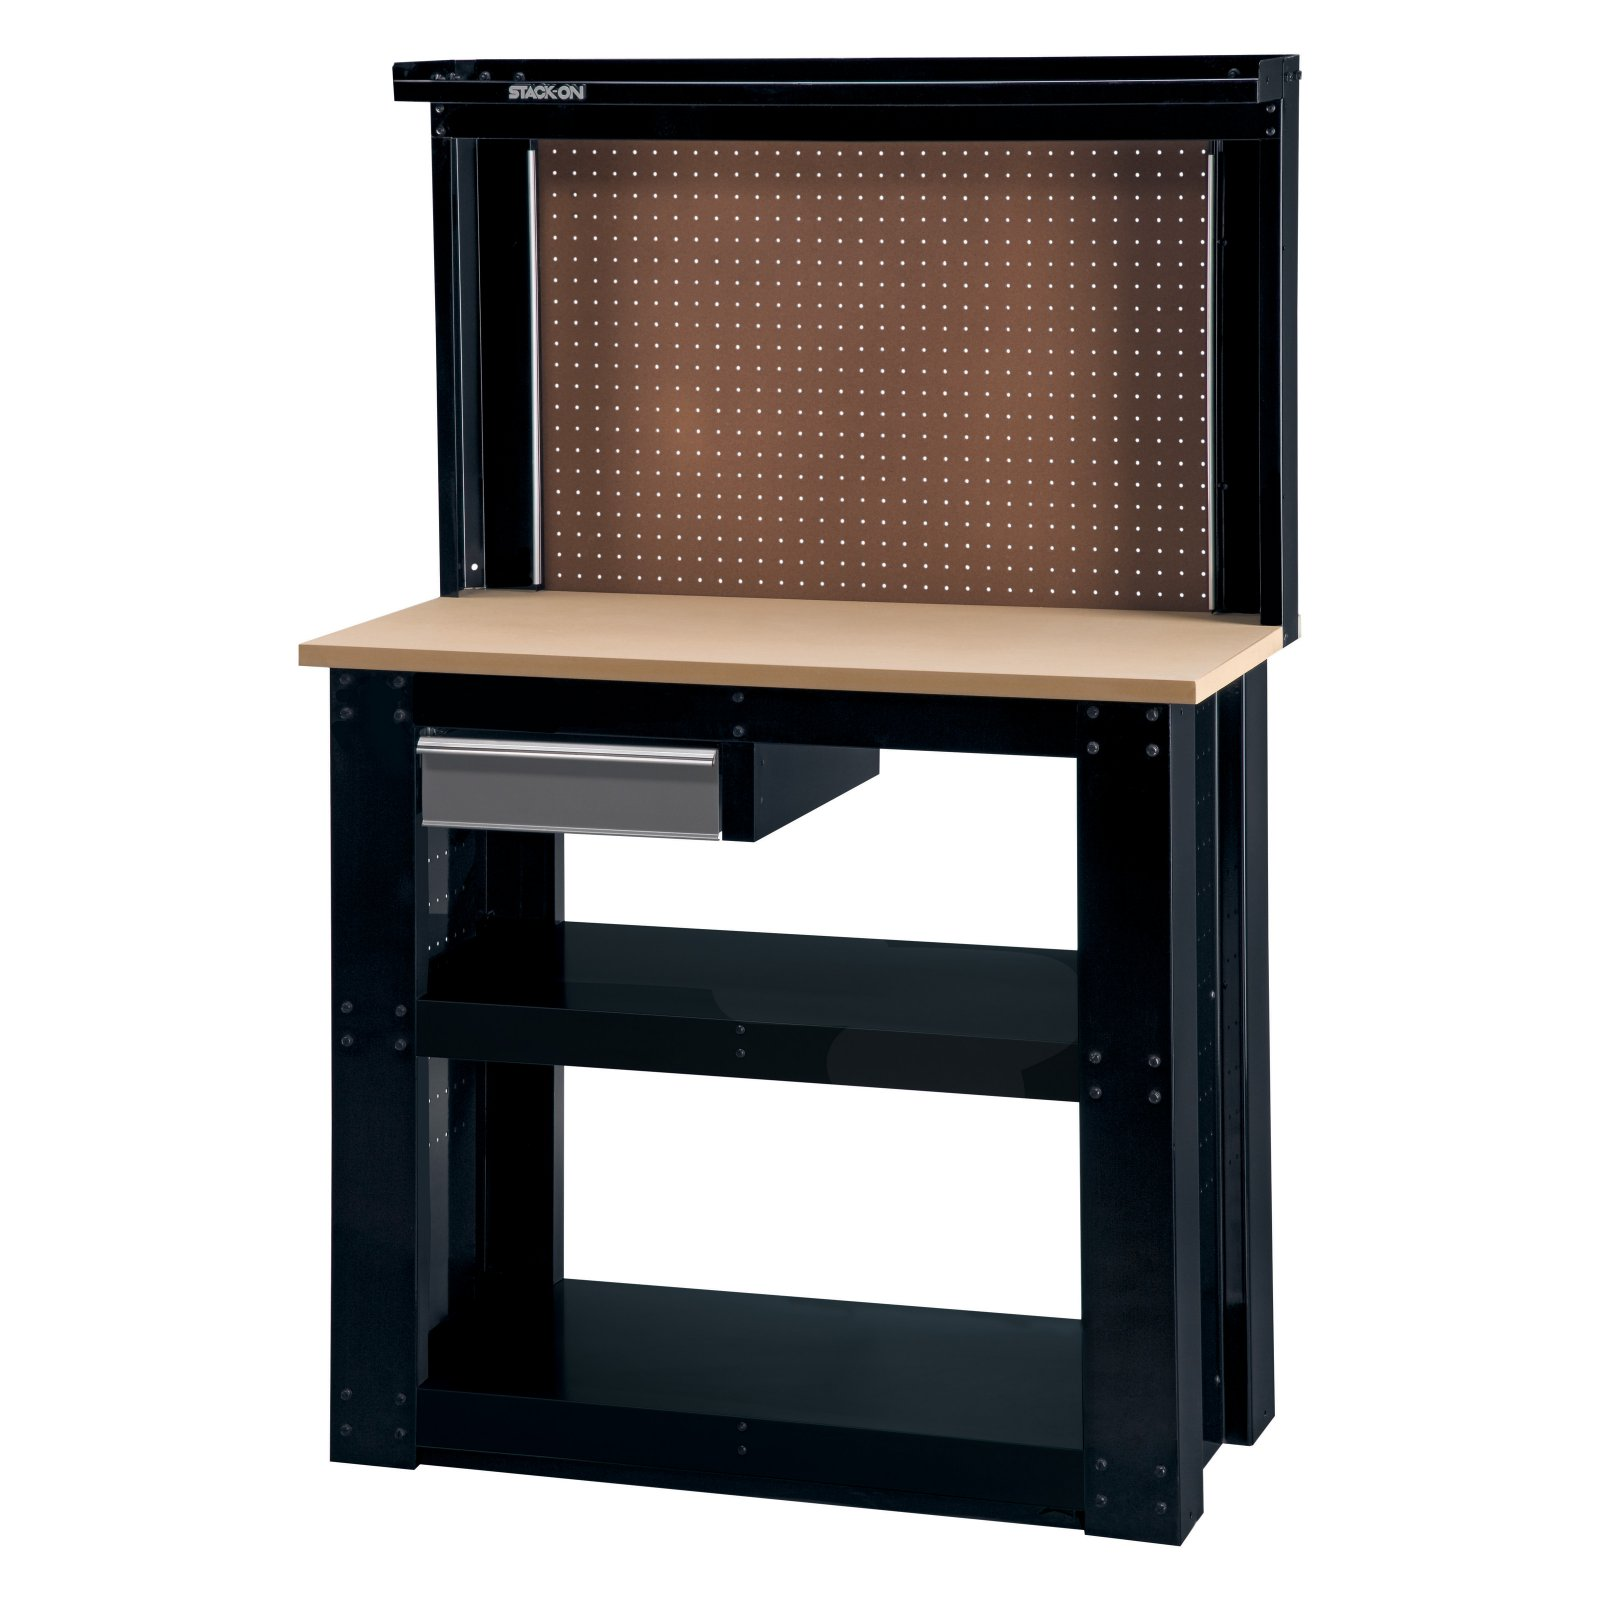 Stack-On 40-in. Steel Reloading Workbench with Back Wall